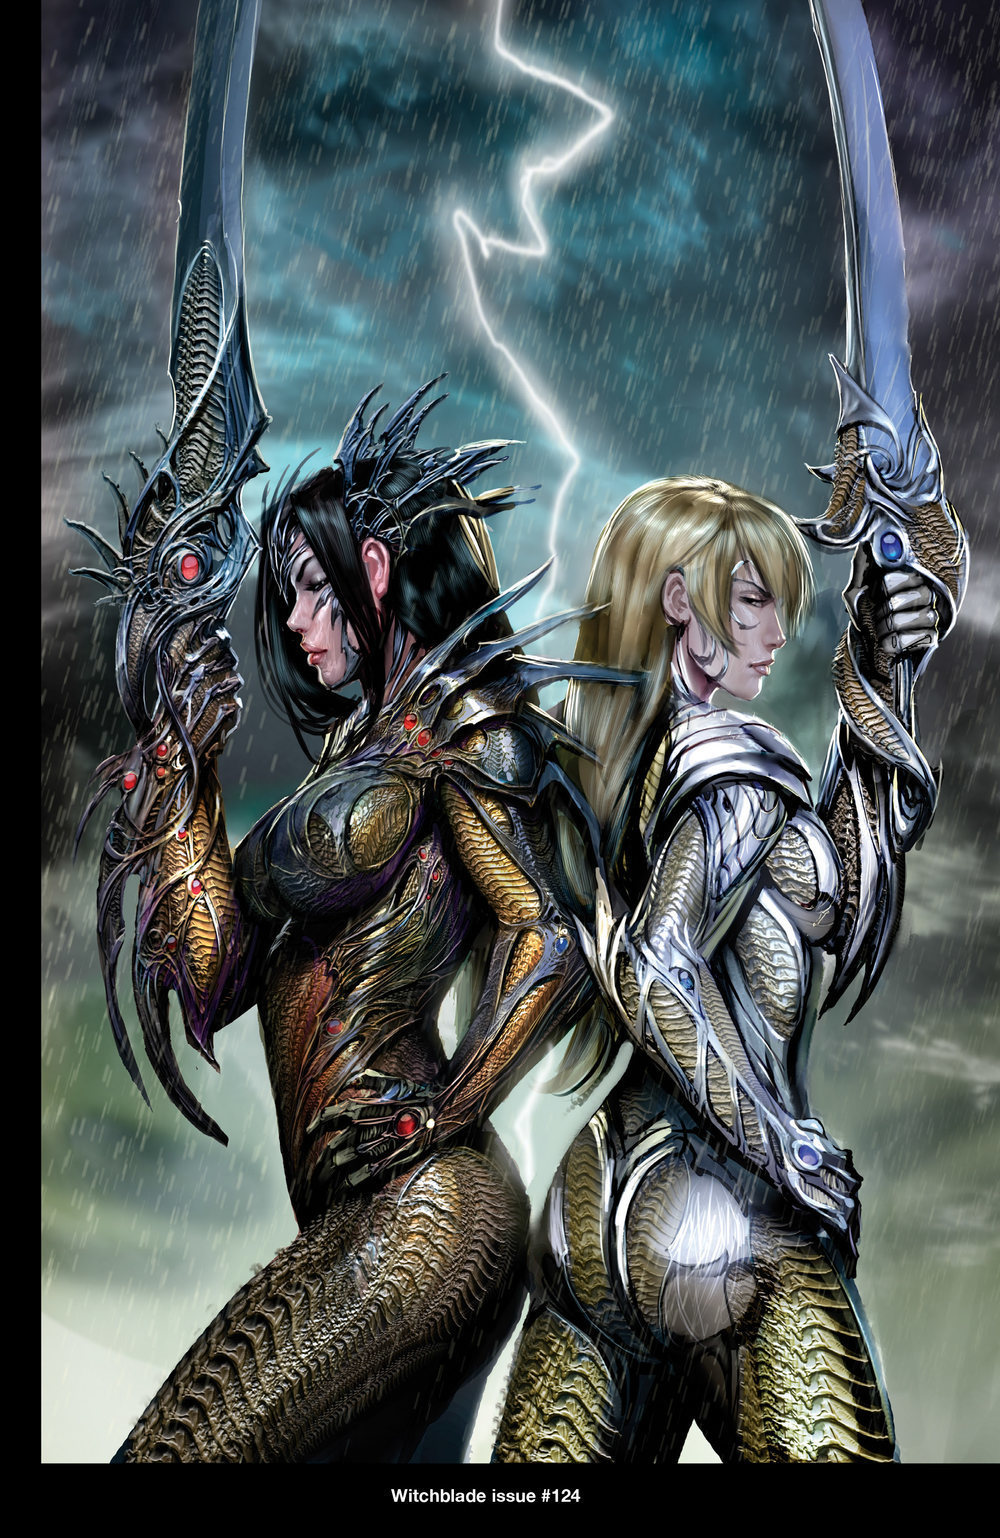 【The Art of Witchblade-魔女之刃】 (6).jpg